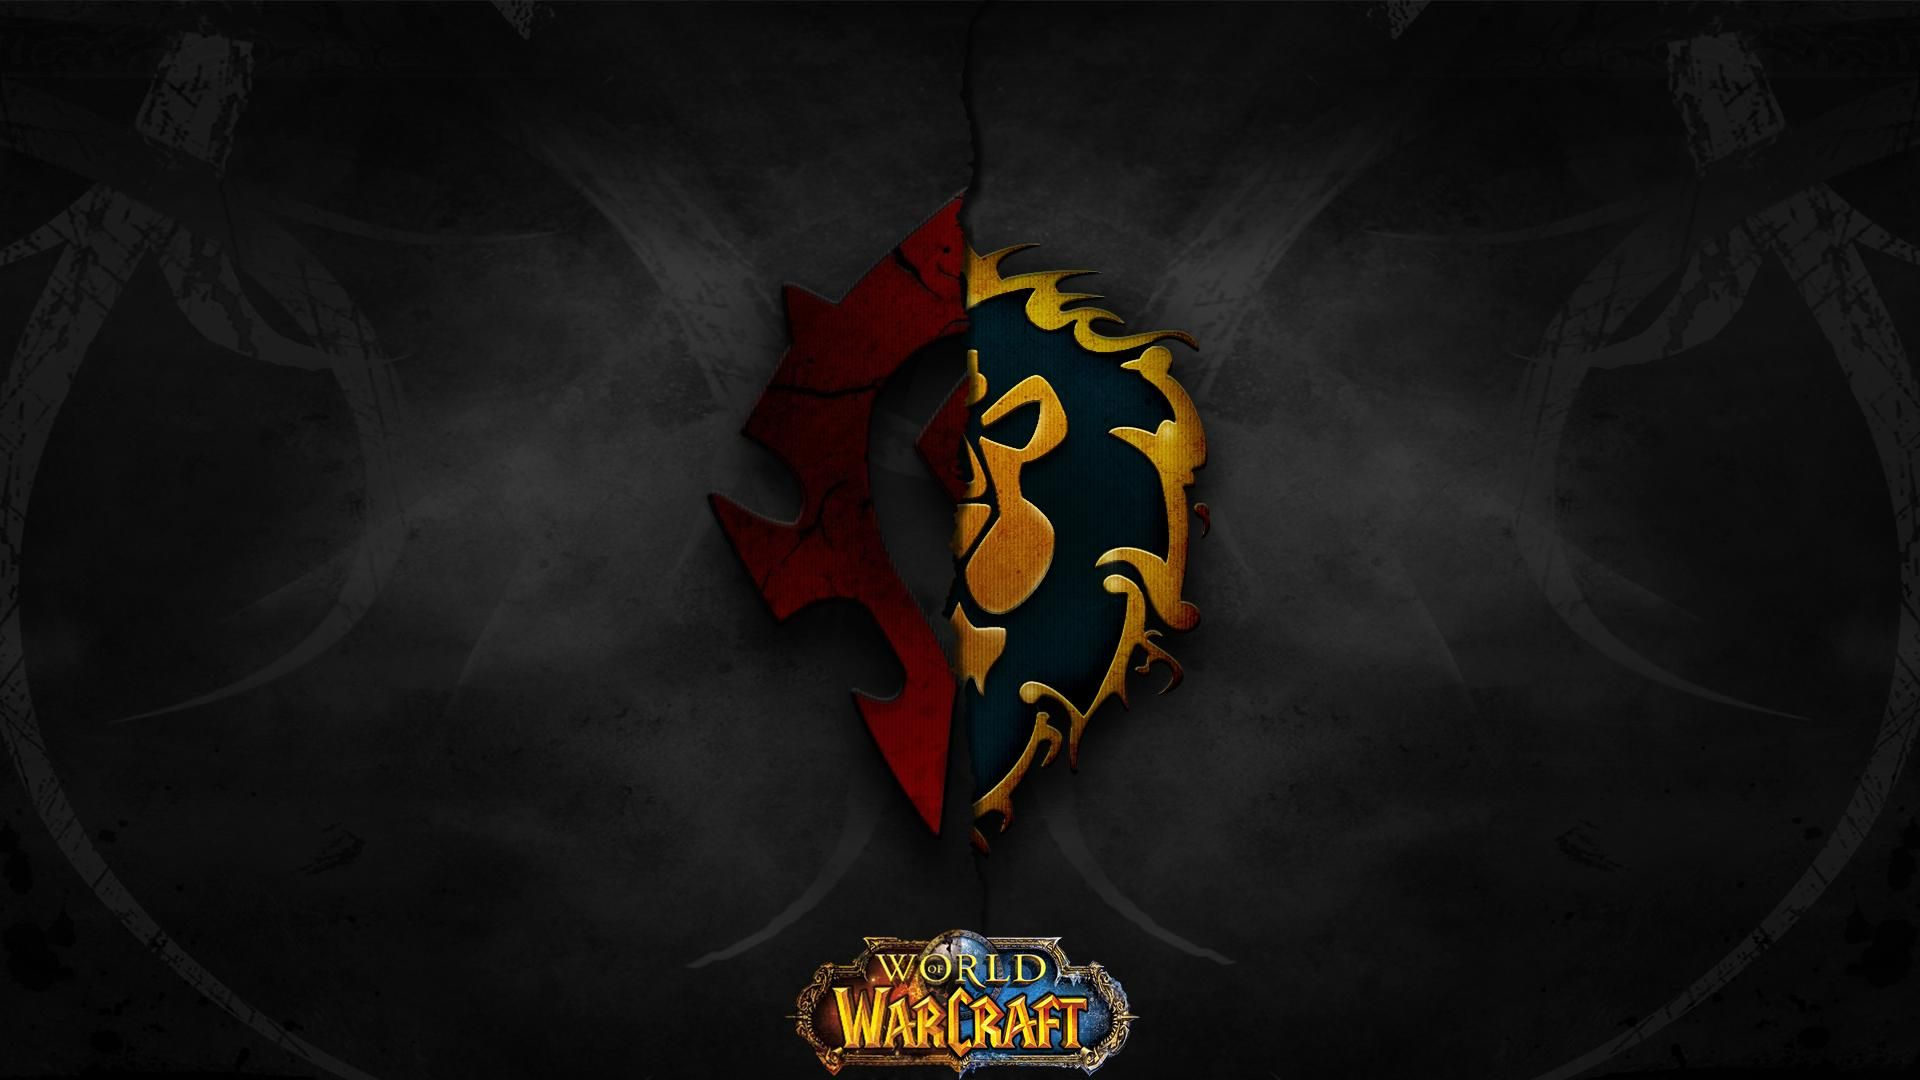 World Of Warcraft Alliance Vs Horde Hd Images Wallpaper Wallpaper 1920 1080 World Of Warcraft Alliance W World Of Warcraft Wallpaper World Of Warcraft Warcraft